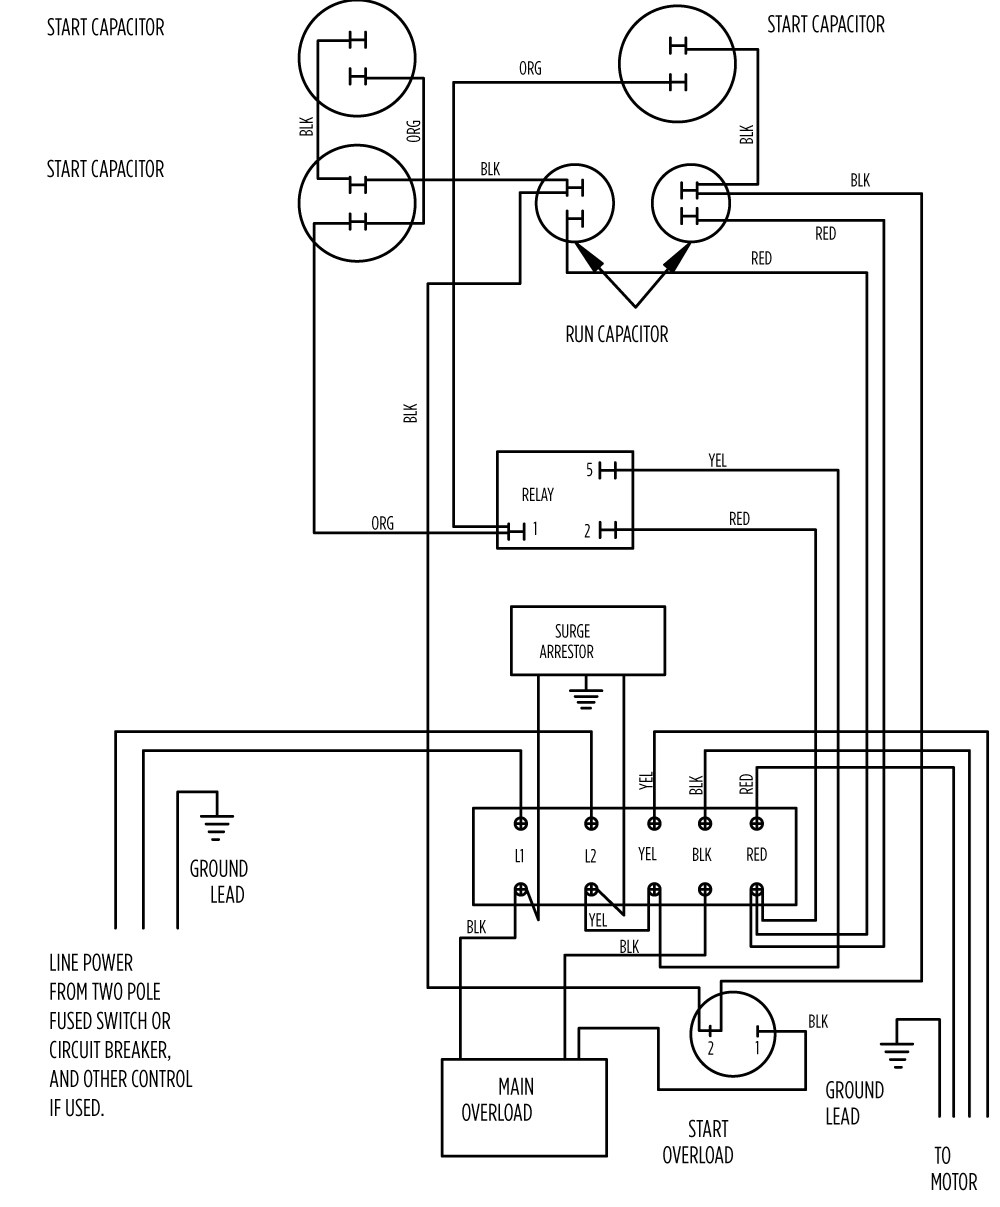 aim manual page 57 single phase motors and controls motor rh franklinwater com